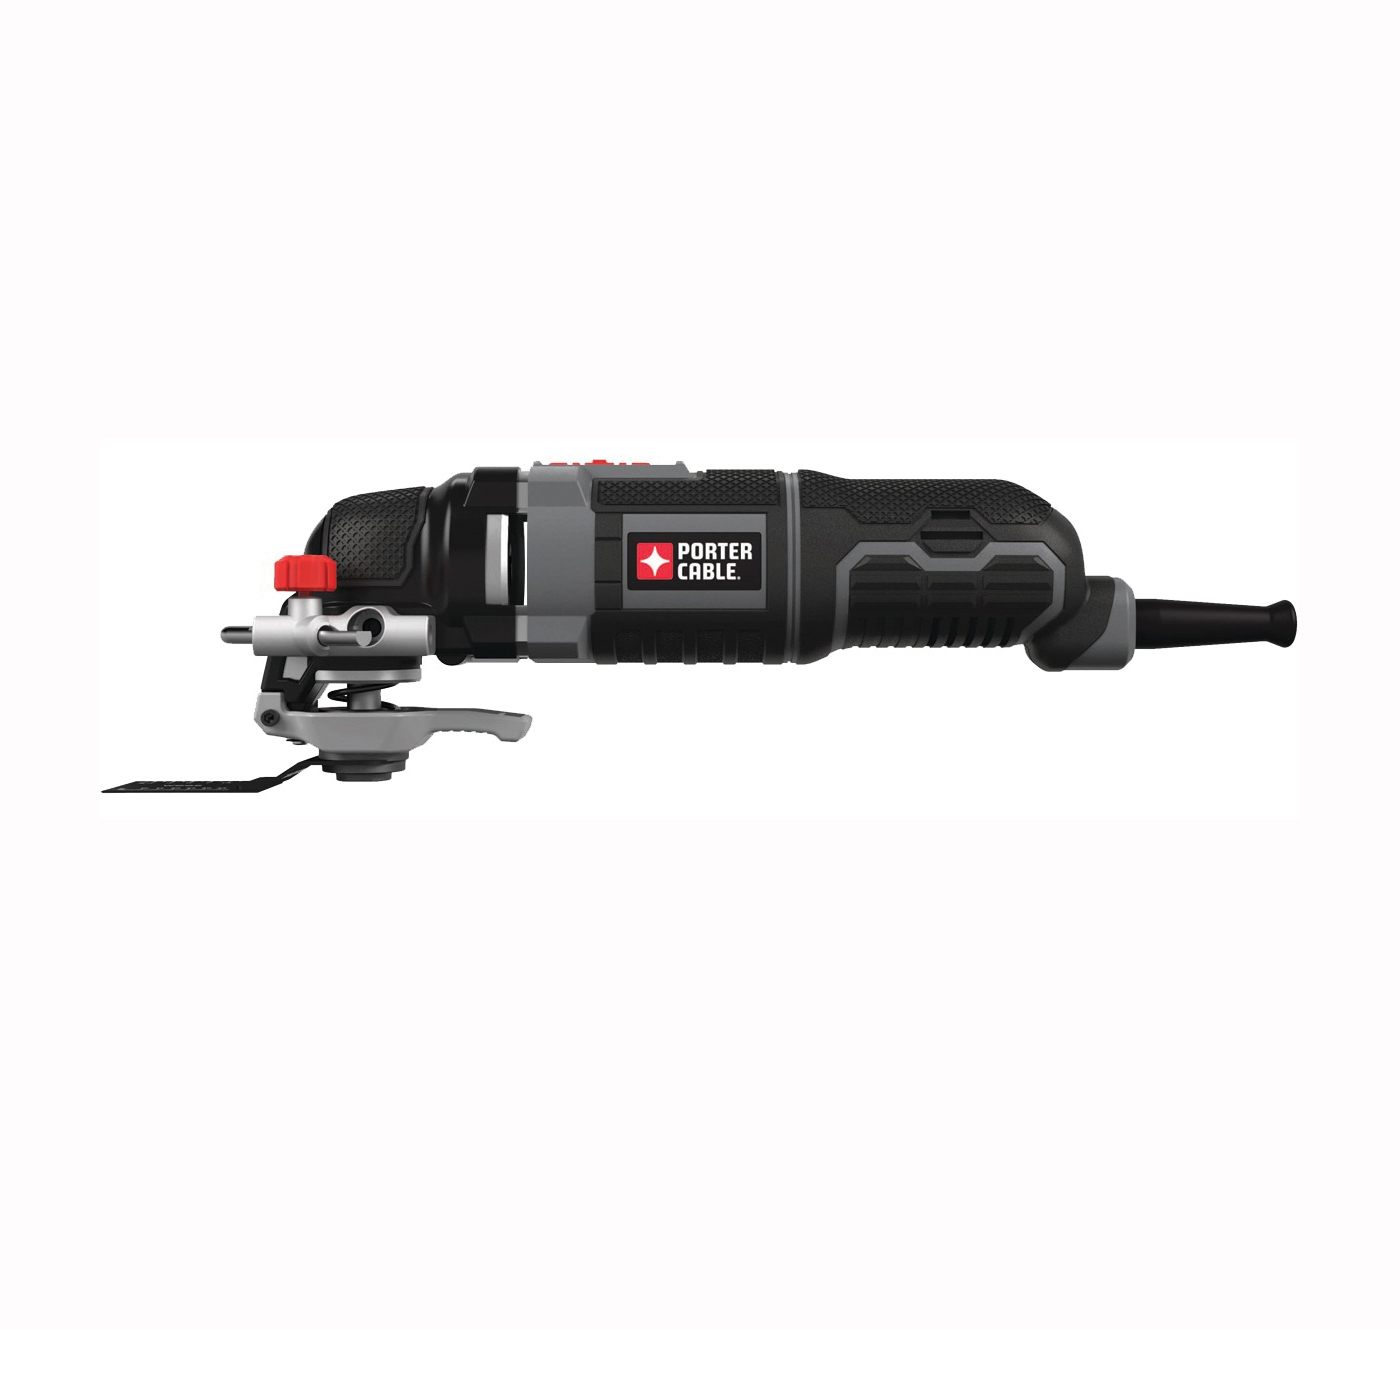 Picture of PORTER-CABLE PCE605K Oscillating Multi-Tool Kit, 3 A, 10,000 to 22,000 opm OPM, 2.8 deg Oscillating